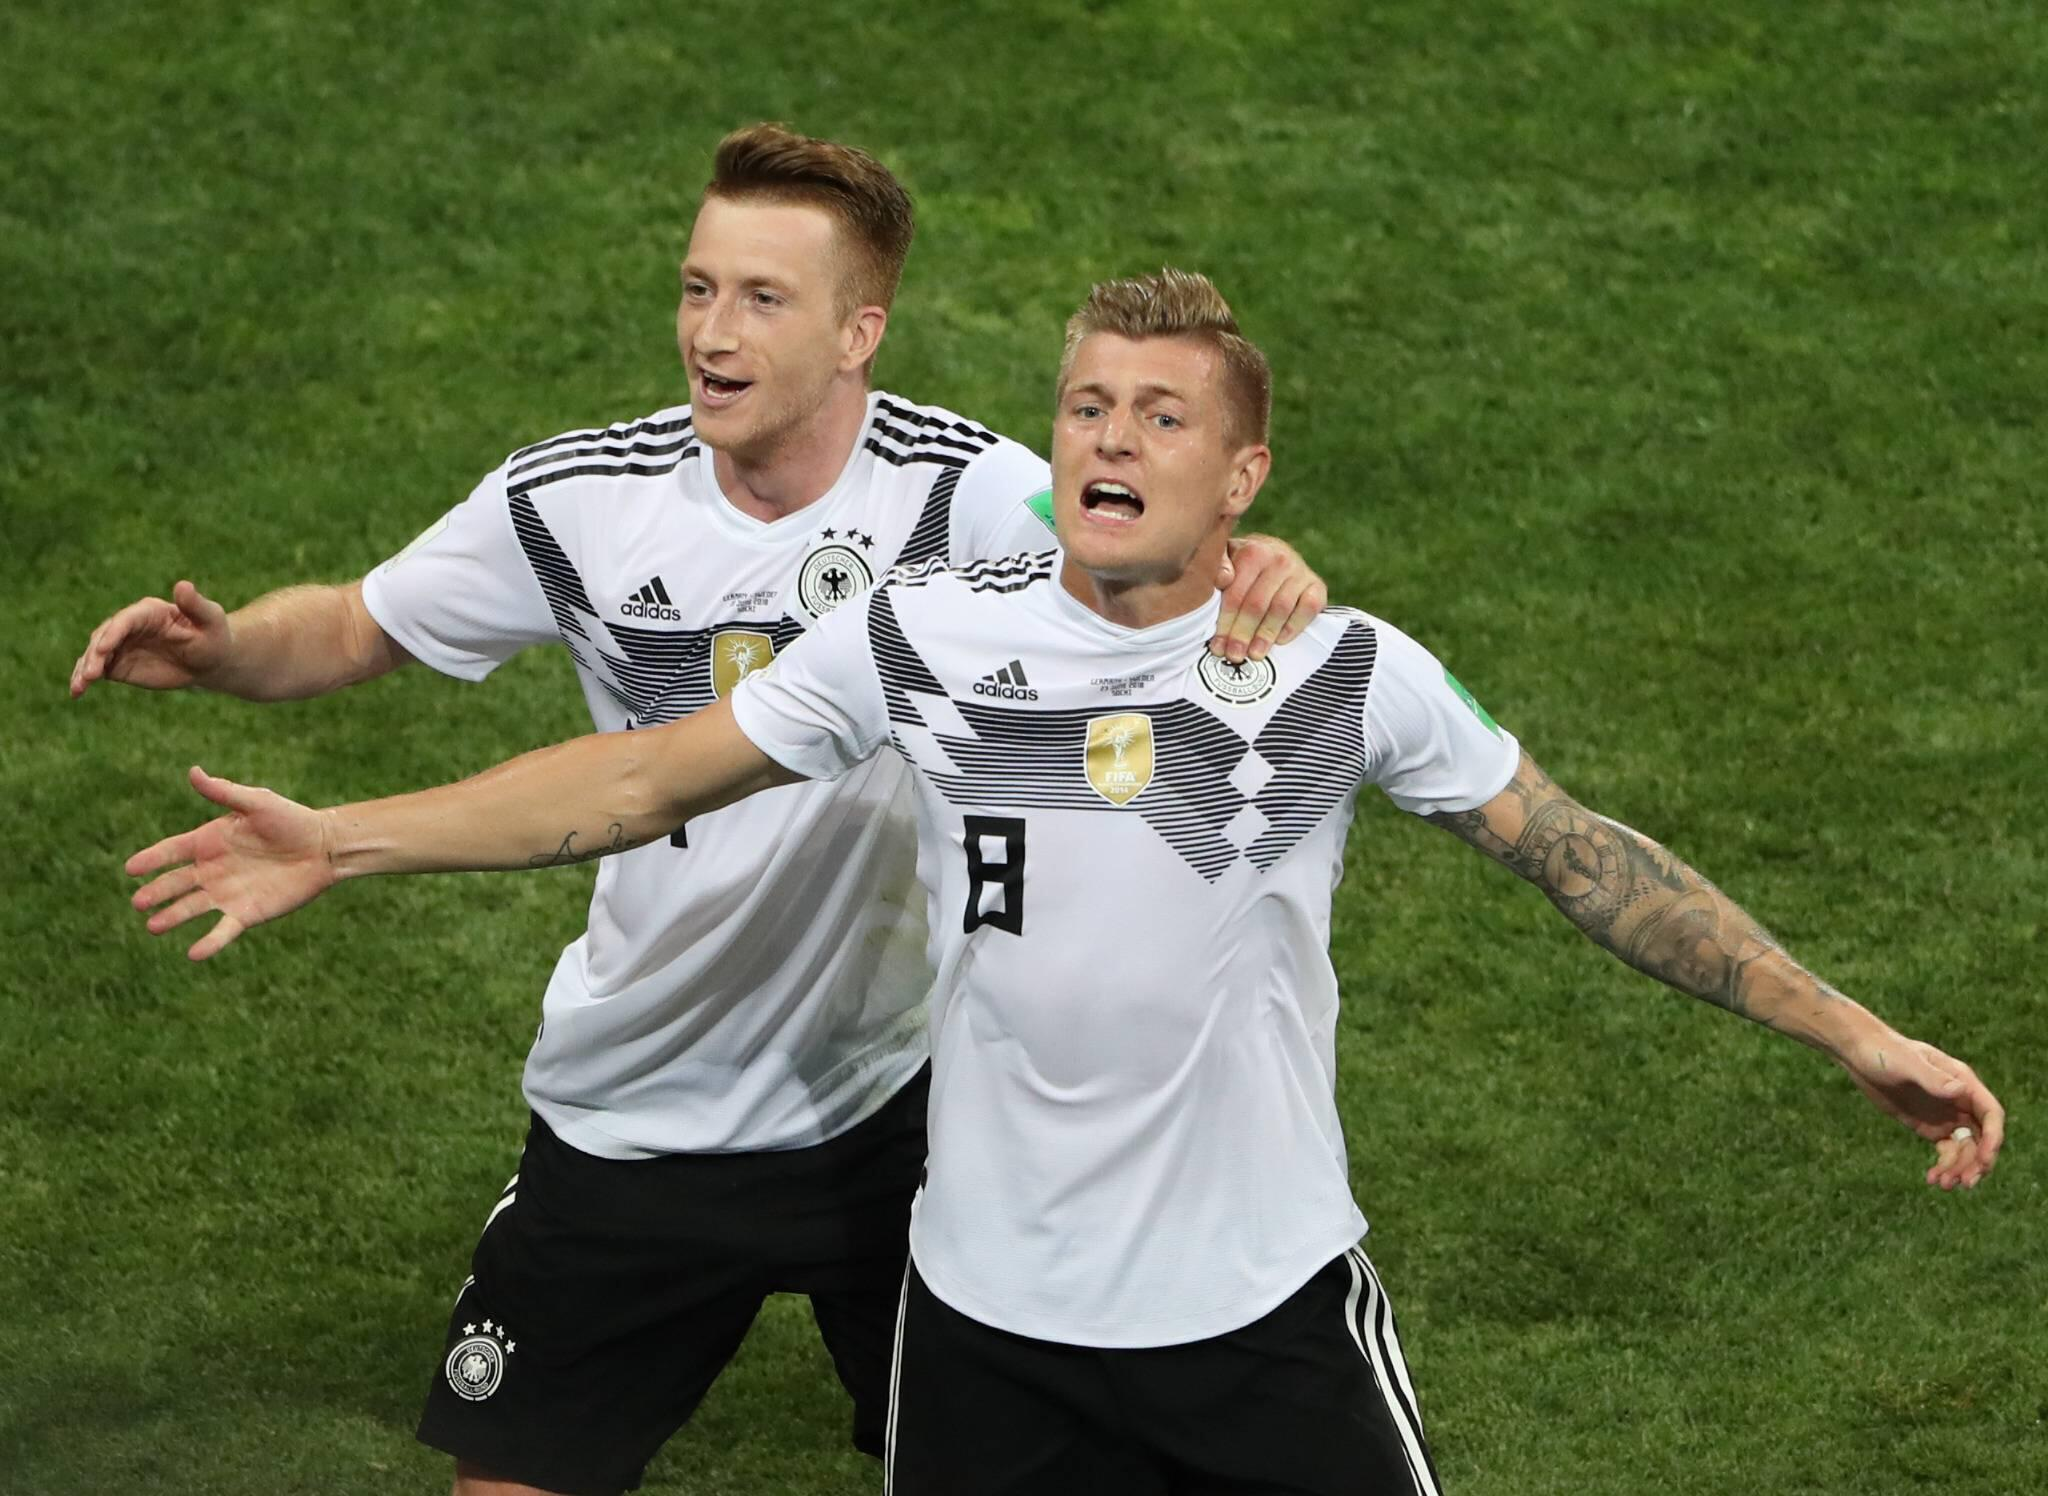 Bild zu Toni Kroos, WM 2018, Weltmeisterschaft, DFB Team, die Mannschaft